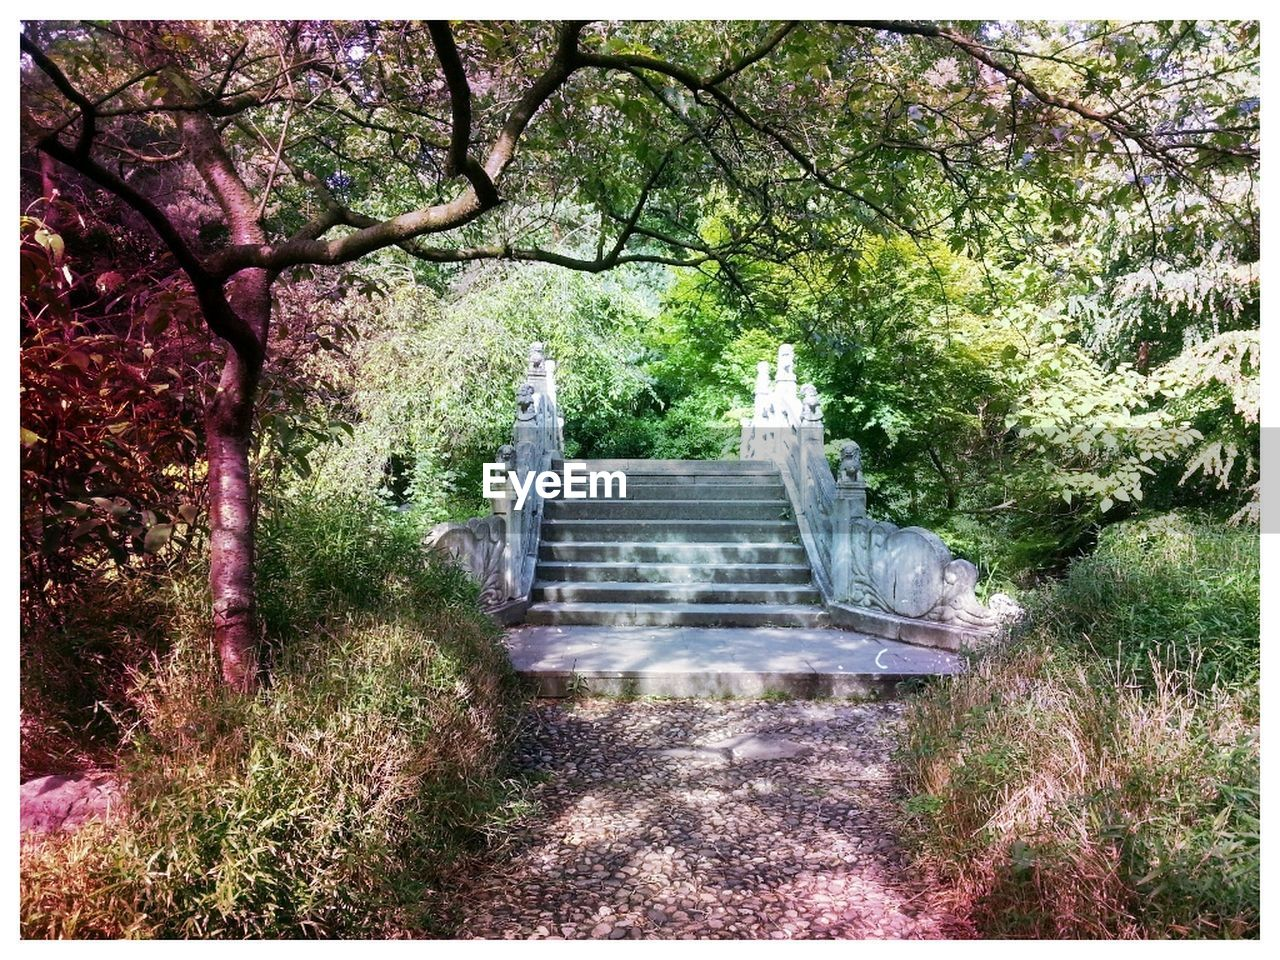 tree, steps, staircase, steps and staircases, stairs, nature, forest, day, outdoors, no people, branch, landscape, beauty in nature